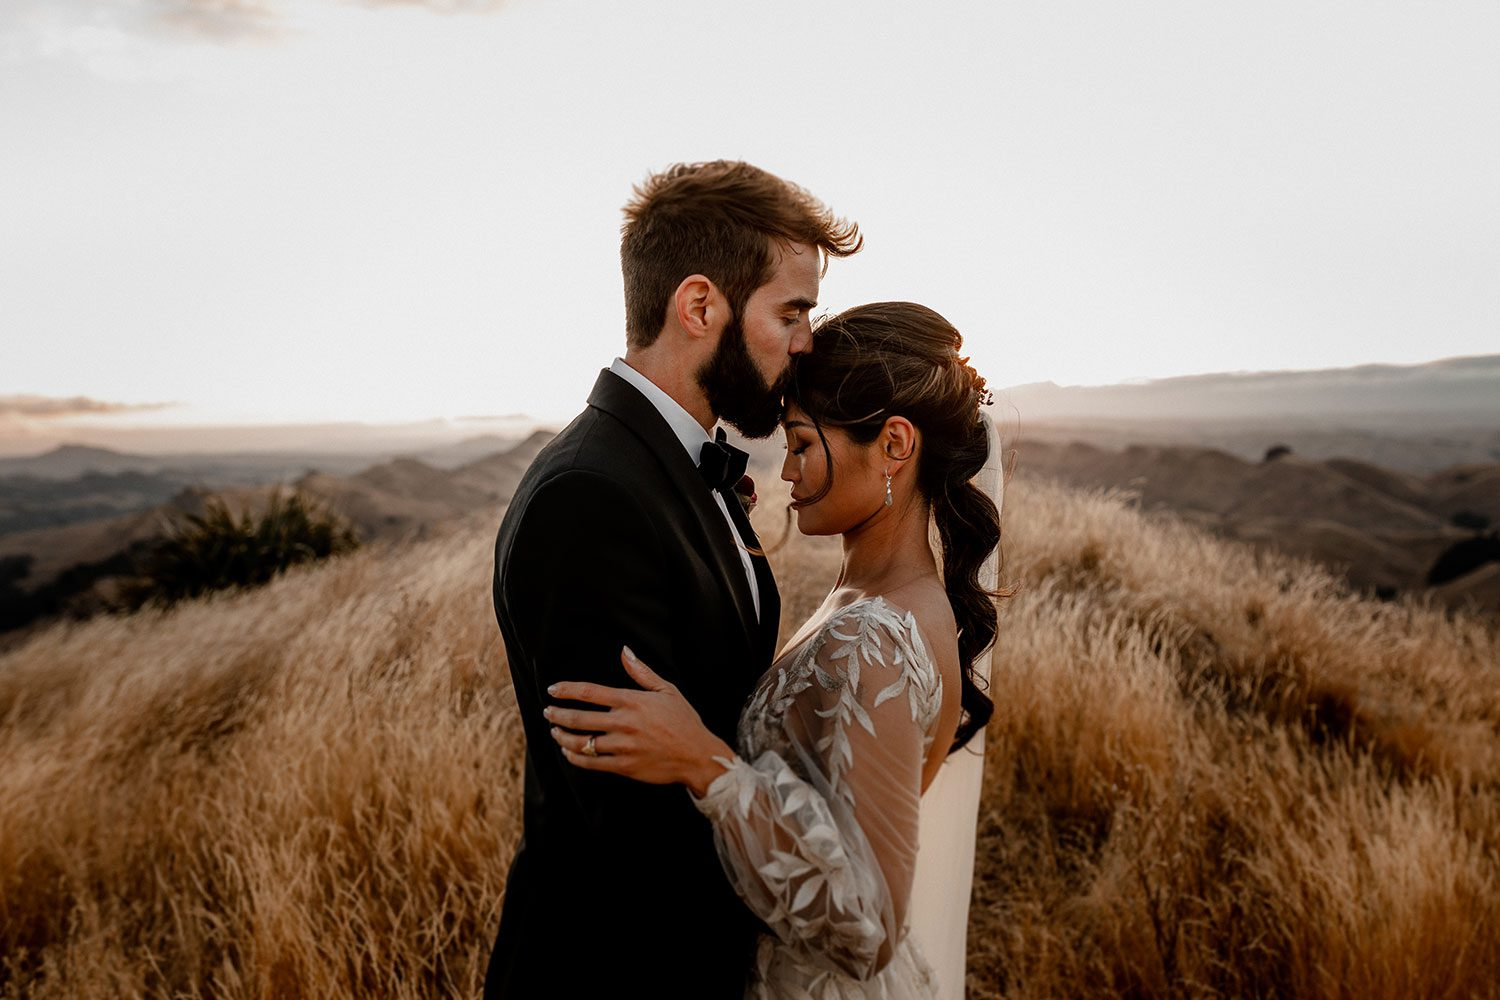 Bride wearing bespoke designer wedding dress by Vinka Bridal Boutique NZ, adorned with delicate applique lace and puffed sleeves - profile kiss